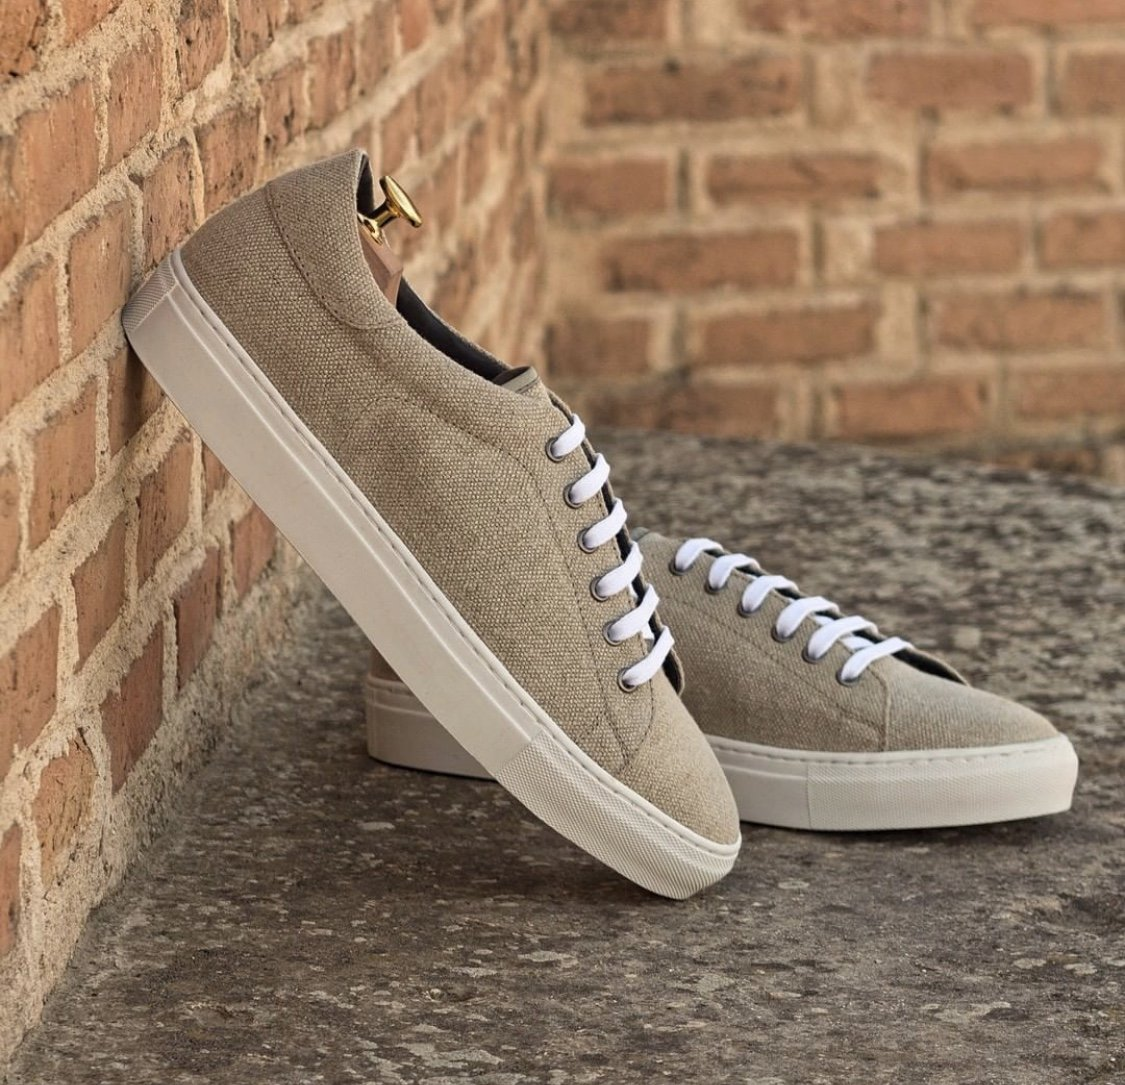 Designing Custom Grey Casual Shoes for Groomsmen party